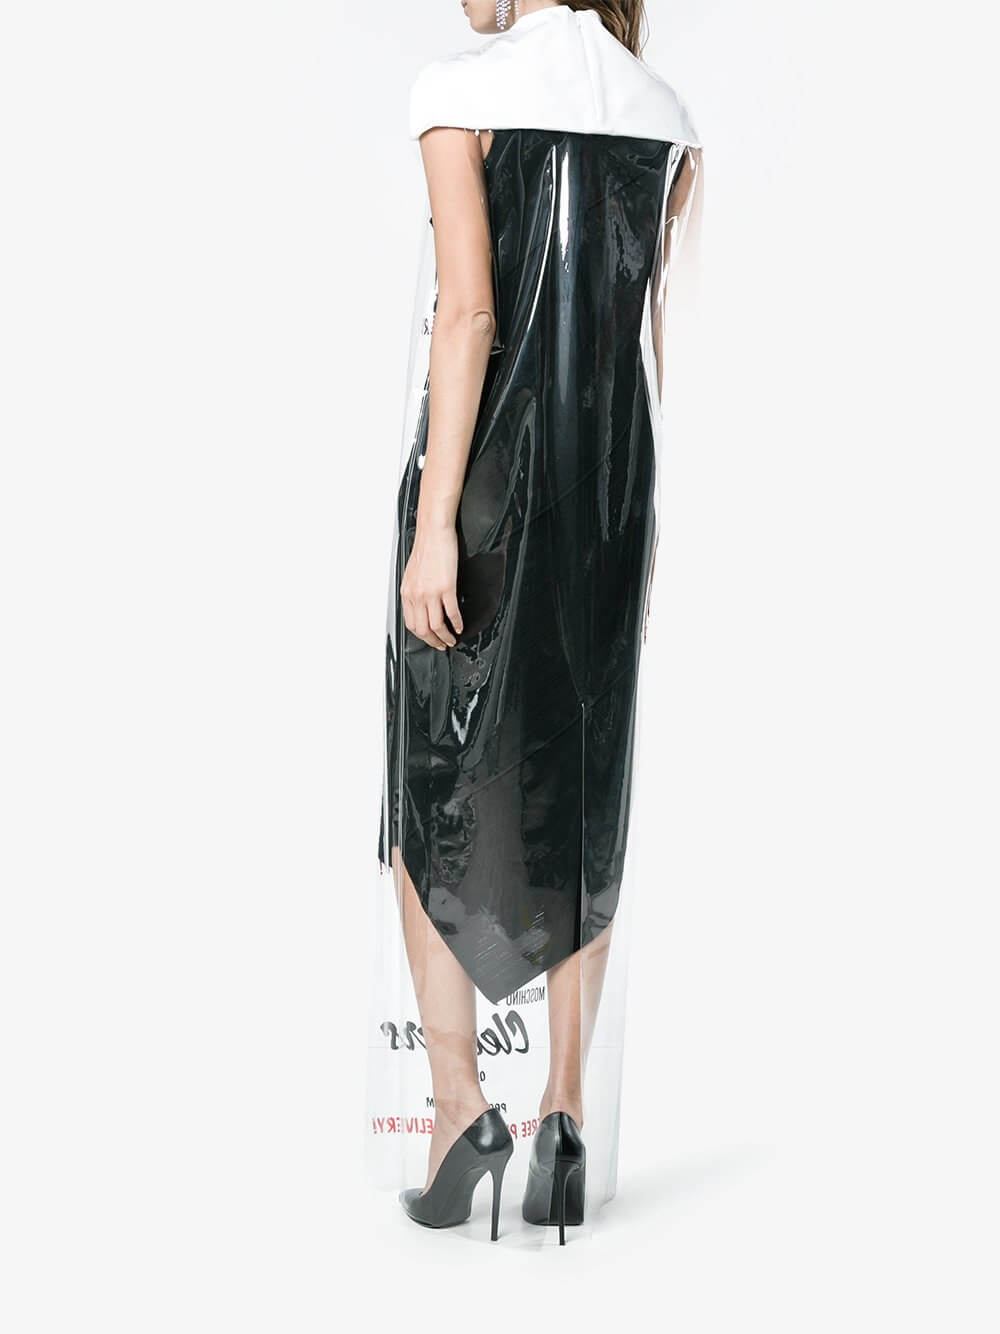 Retailer sells US$900 dress that looks like a dry cleaning bag